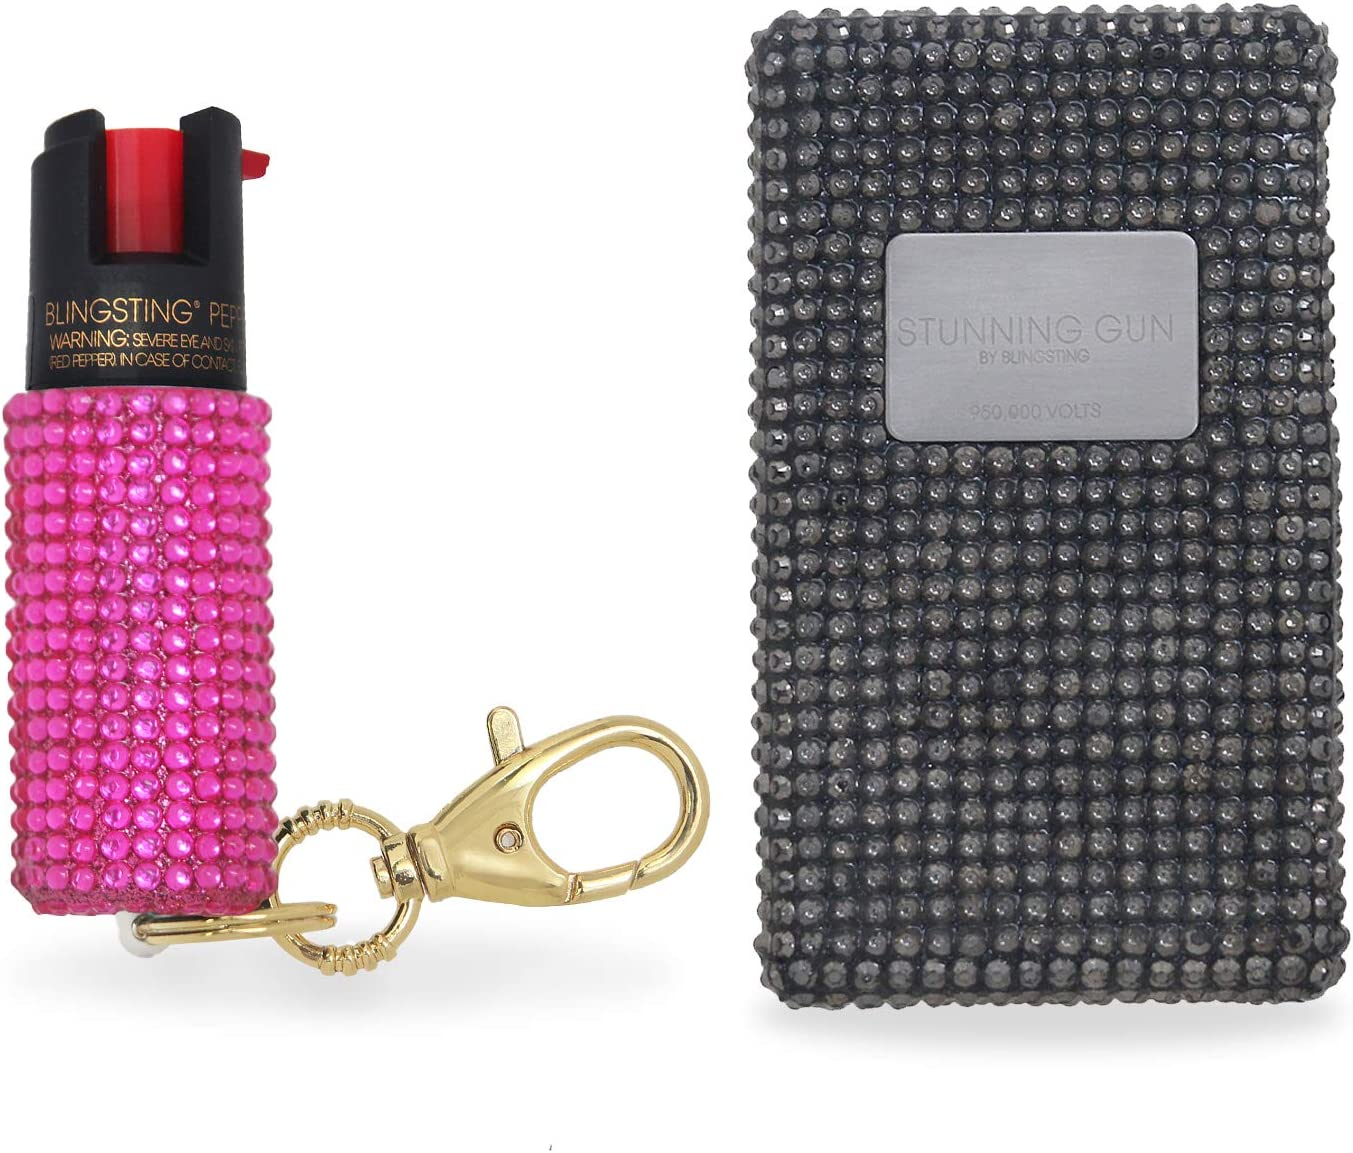 BLINGSTING Pepper Spray Stun Gun Combo Safety Set – Carry Two Powerful Self Defense Products for Women, Maximum Strength Formula with UV Marking Dye, Keychain Clasp AND 950,000 Volt Compact Stun Gun